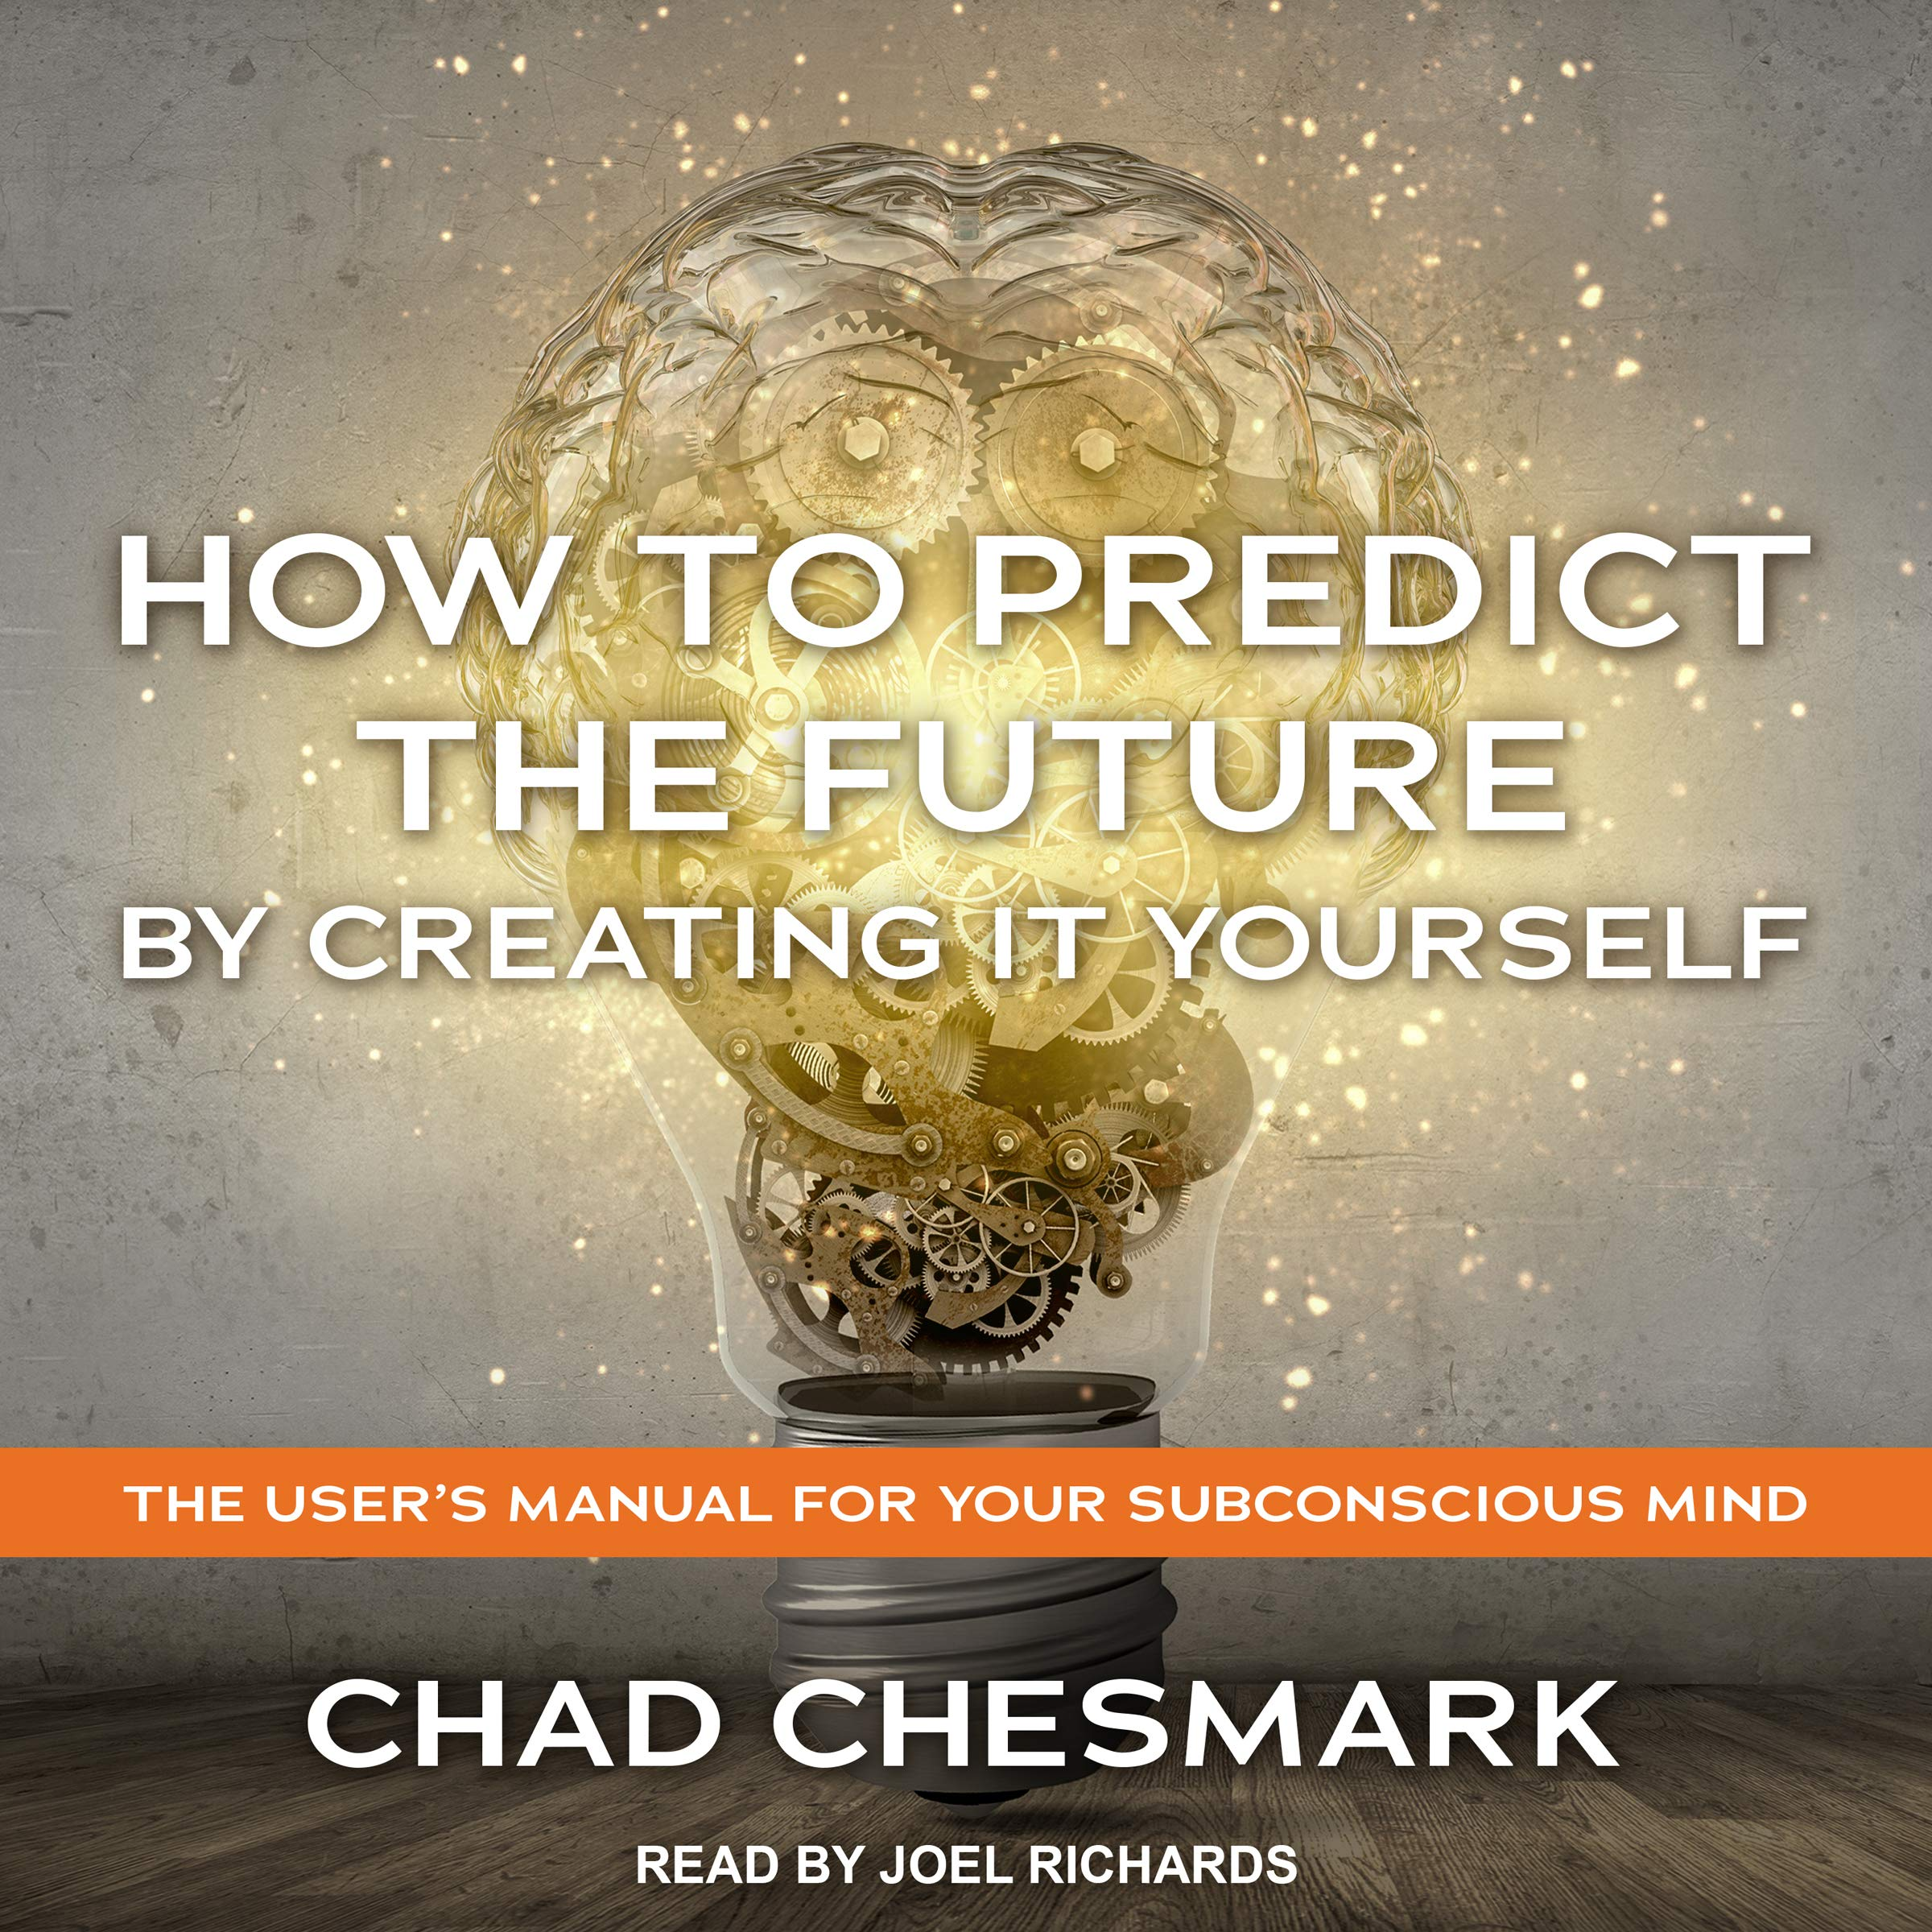 How To Predict The Future By Creating It Yourself  The User's Manual For Your Subconscious Mind